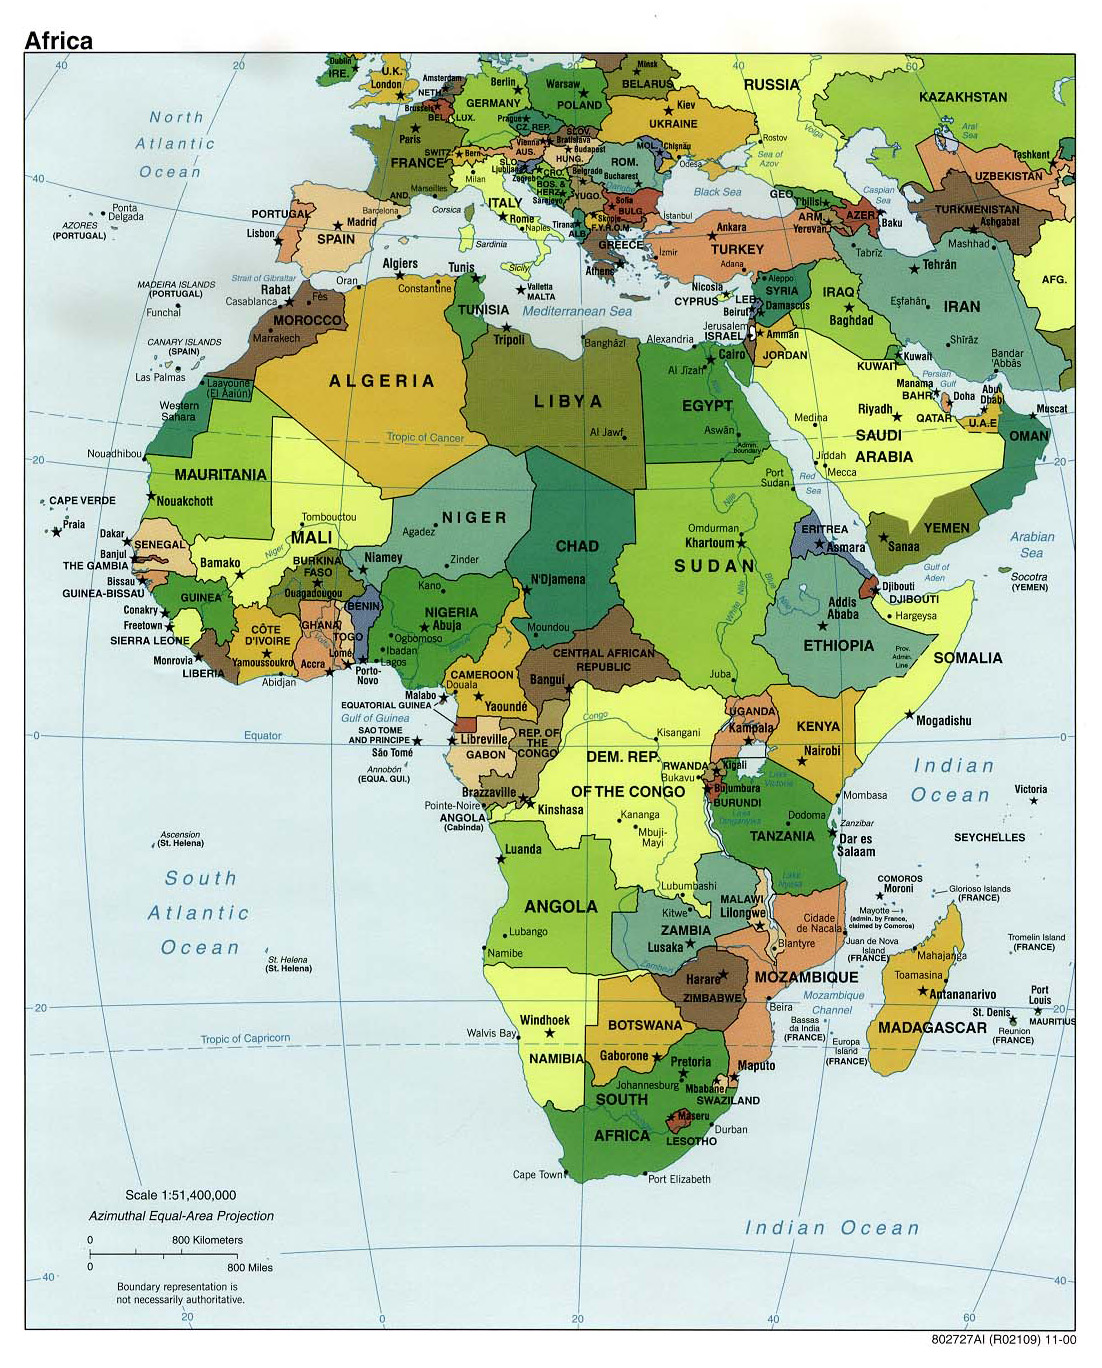 Maps Of Africa And African Countries Political Maps